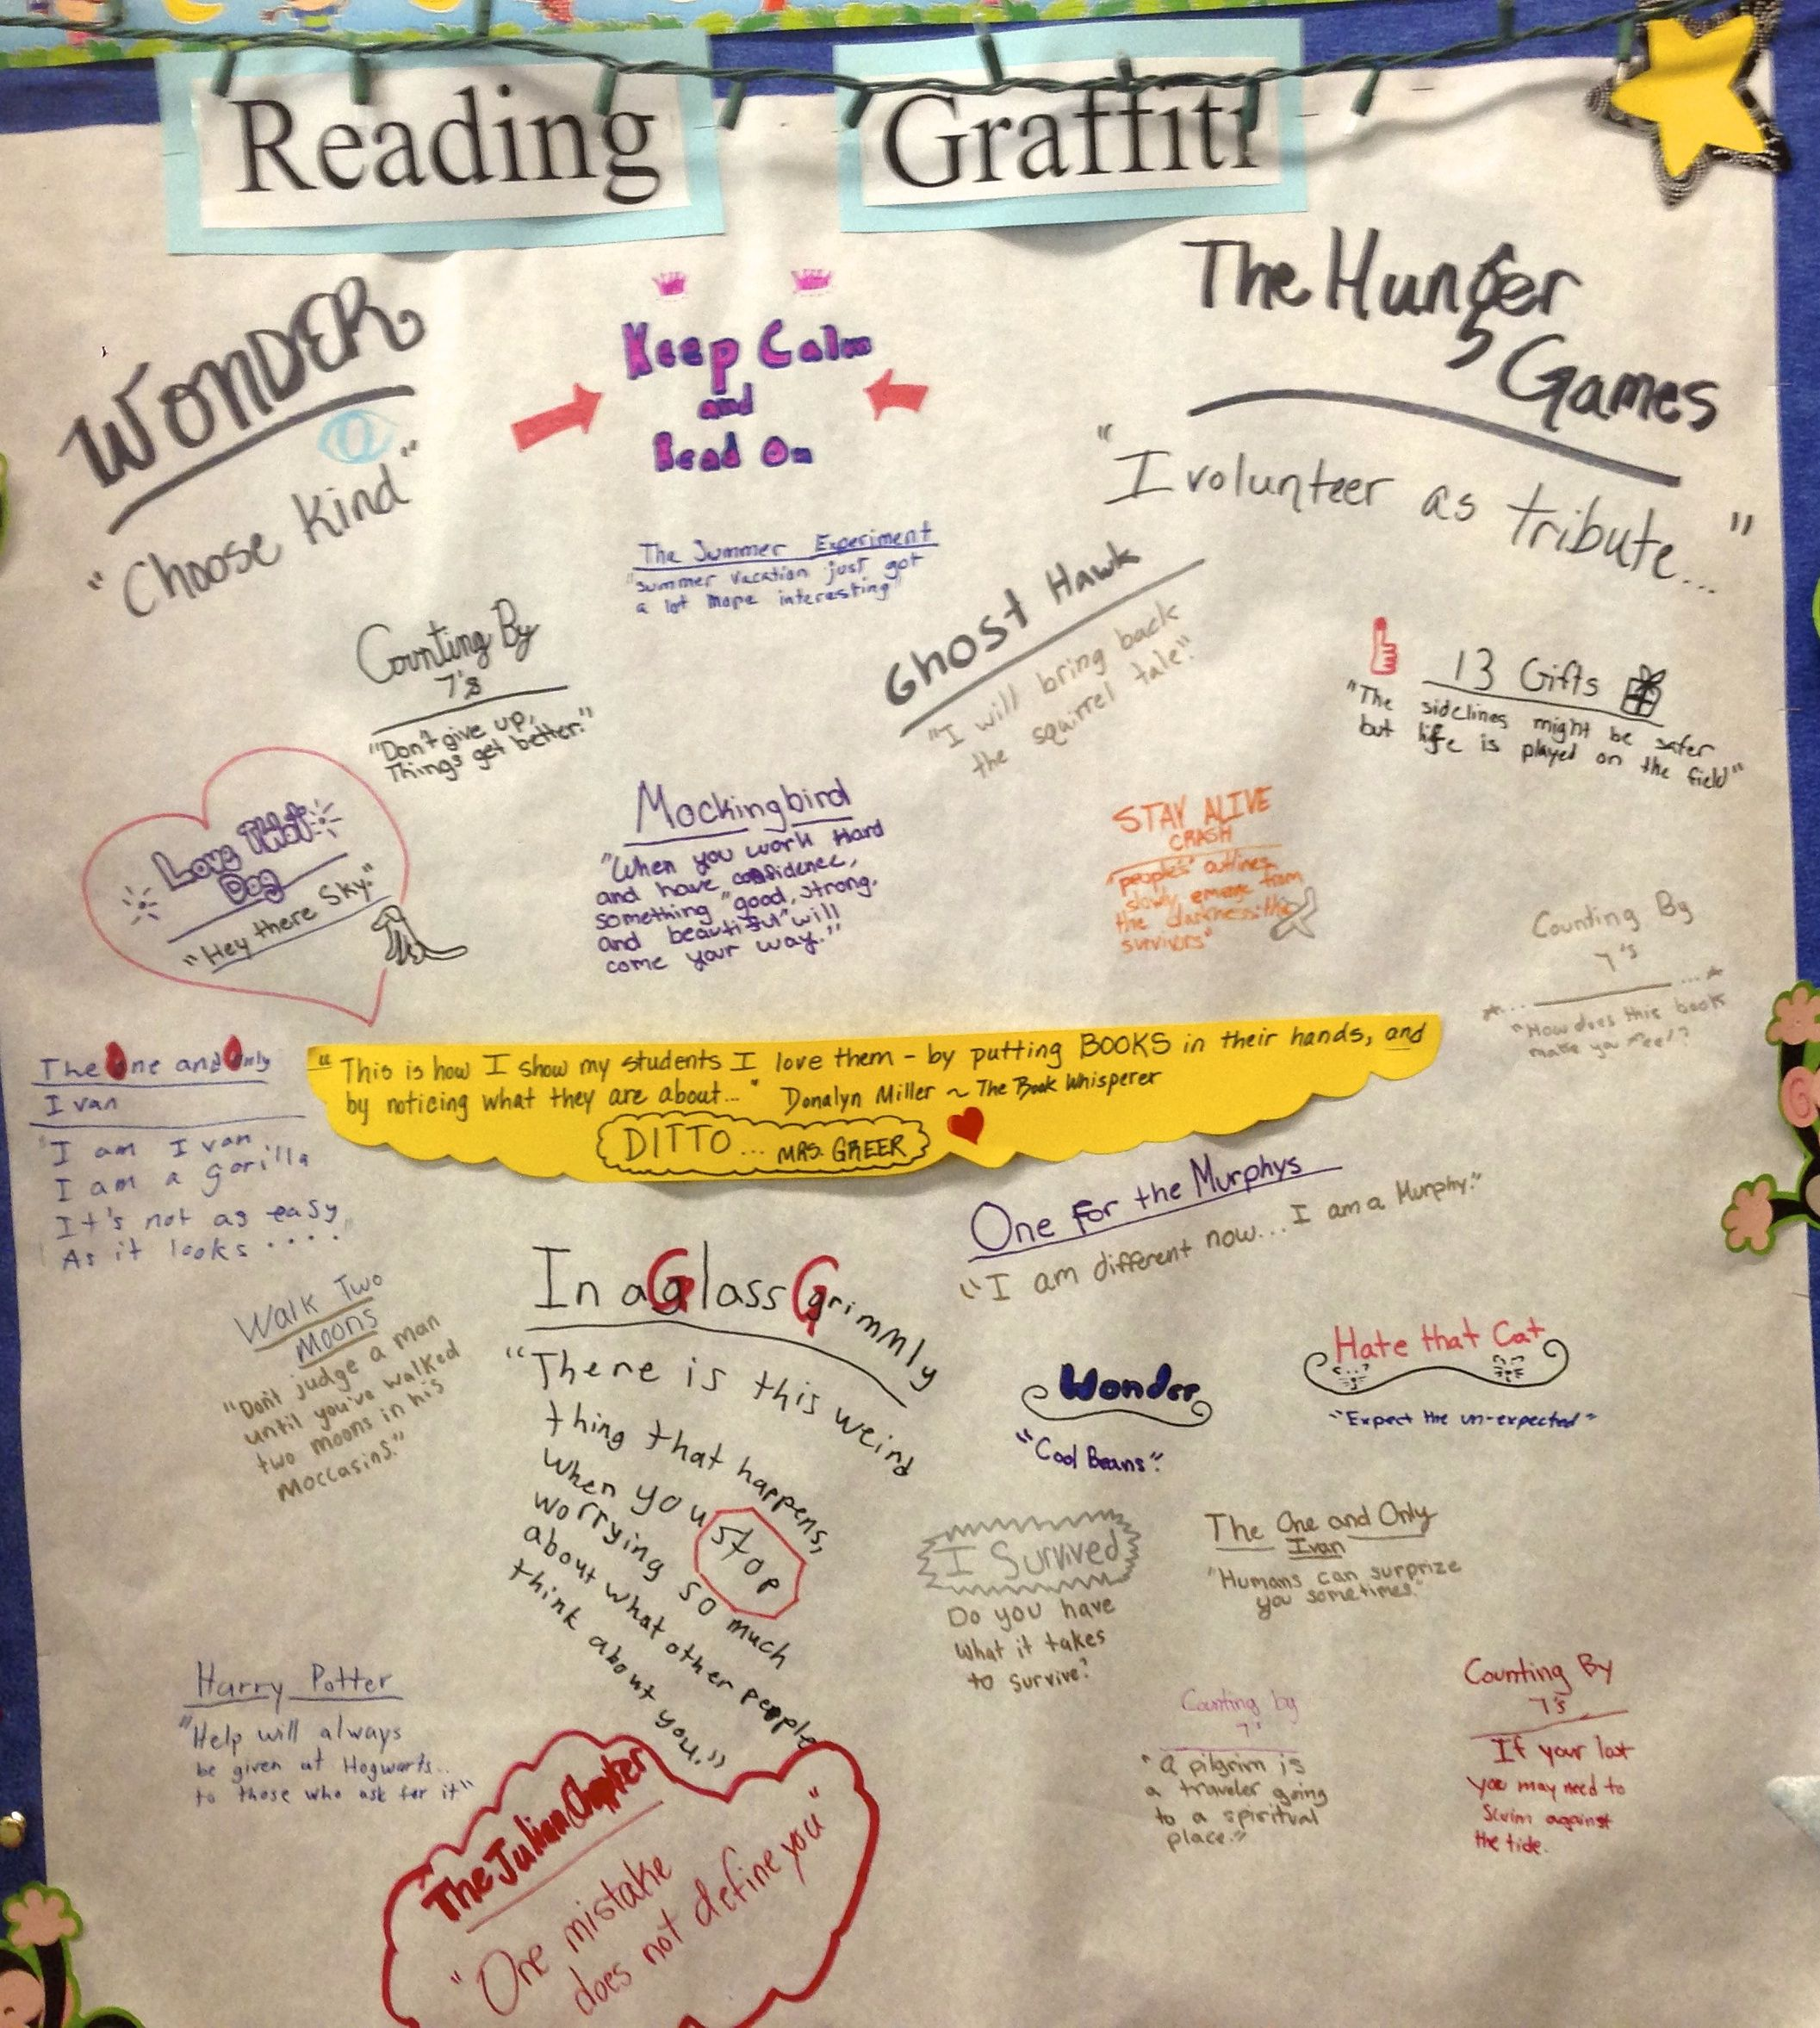 Graffiti wall reading - A Reading Graffiti Wall In Christina Greer S Classroom Her Students Record The Title The